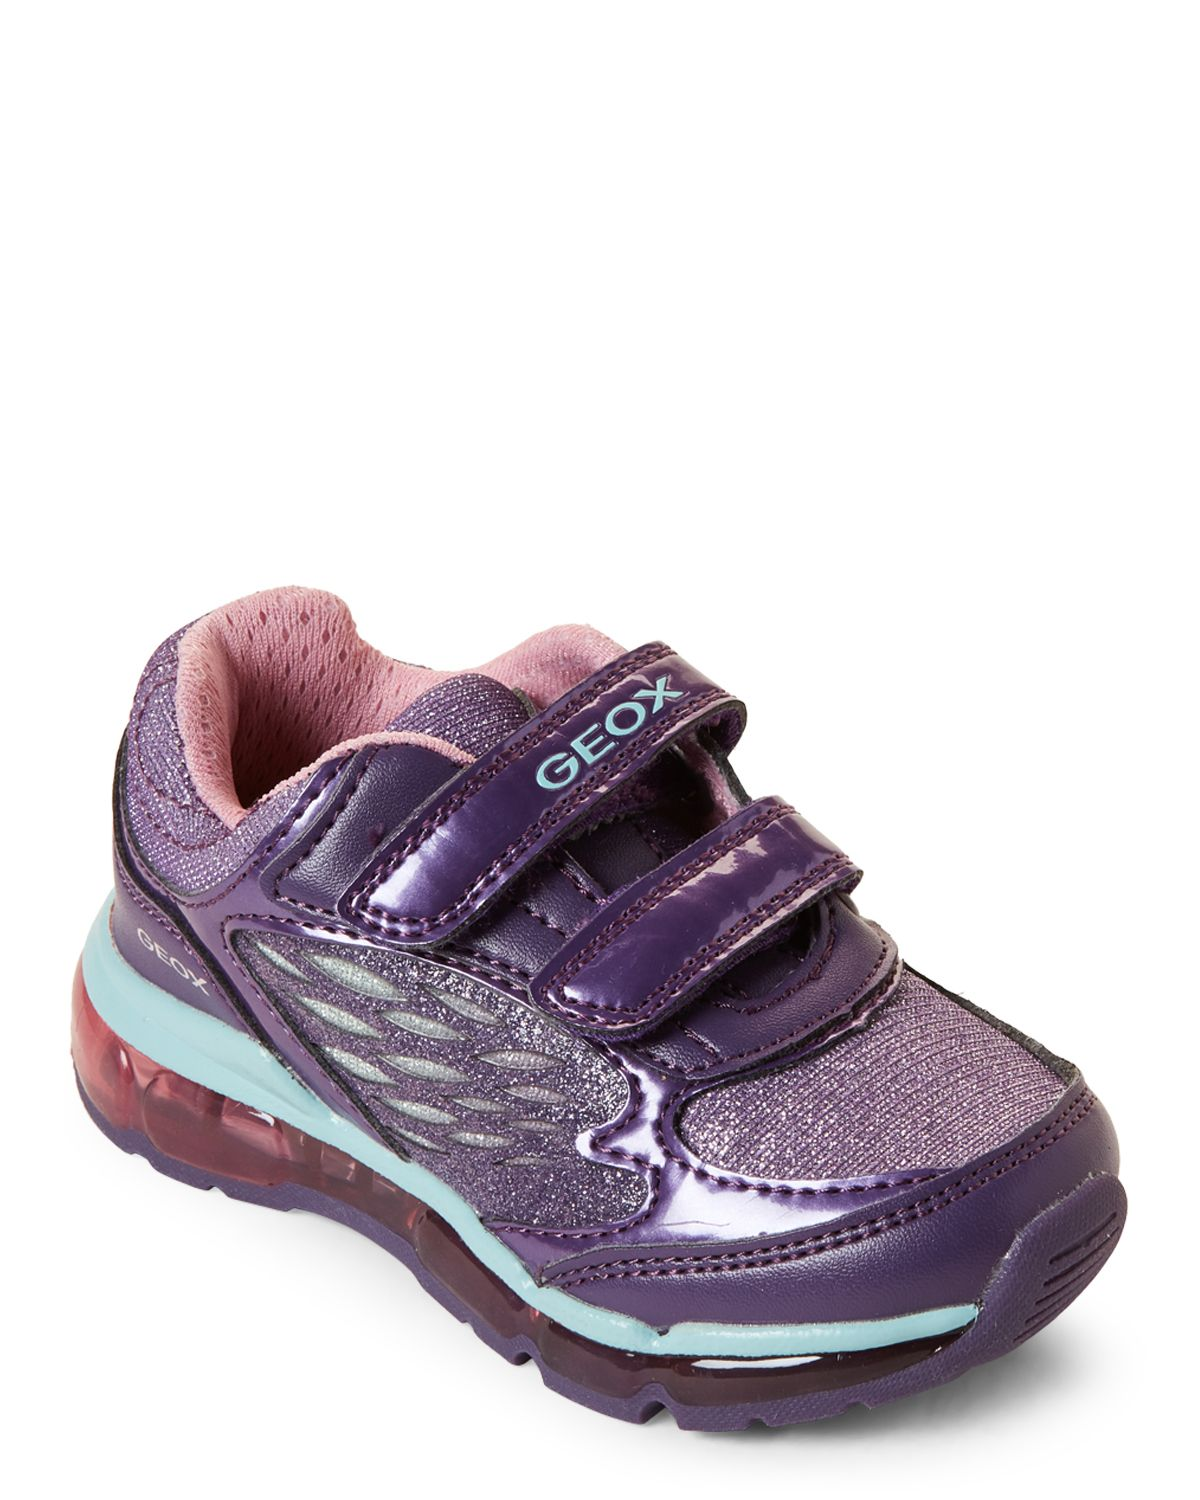 6eb71c87959 Geox Respira (Toddler Girls) Violet & Water Sea Android Light-Up Sneakers